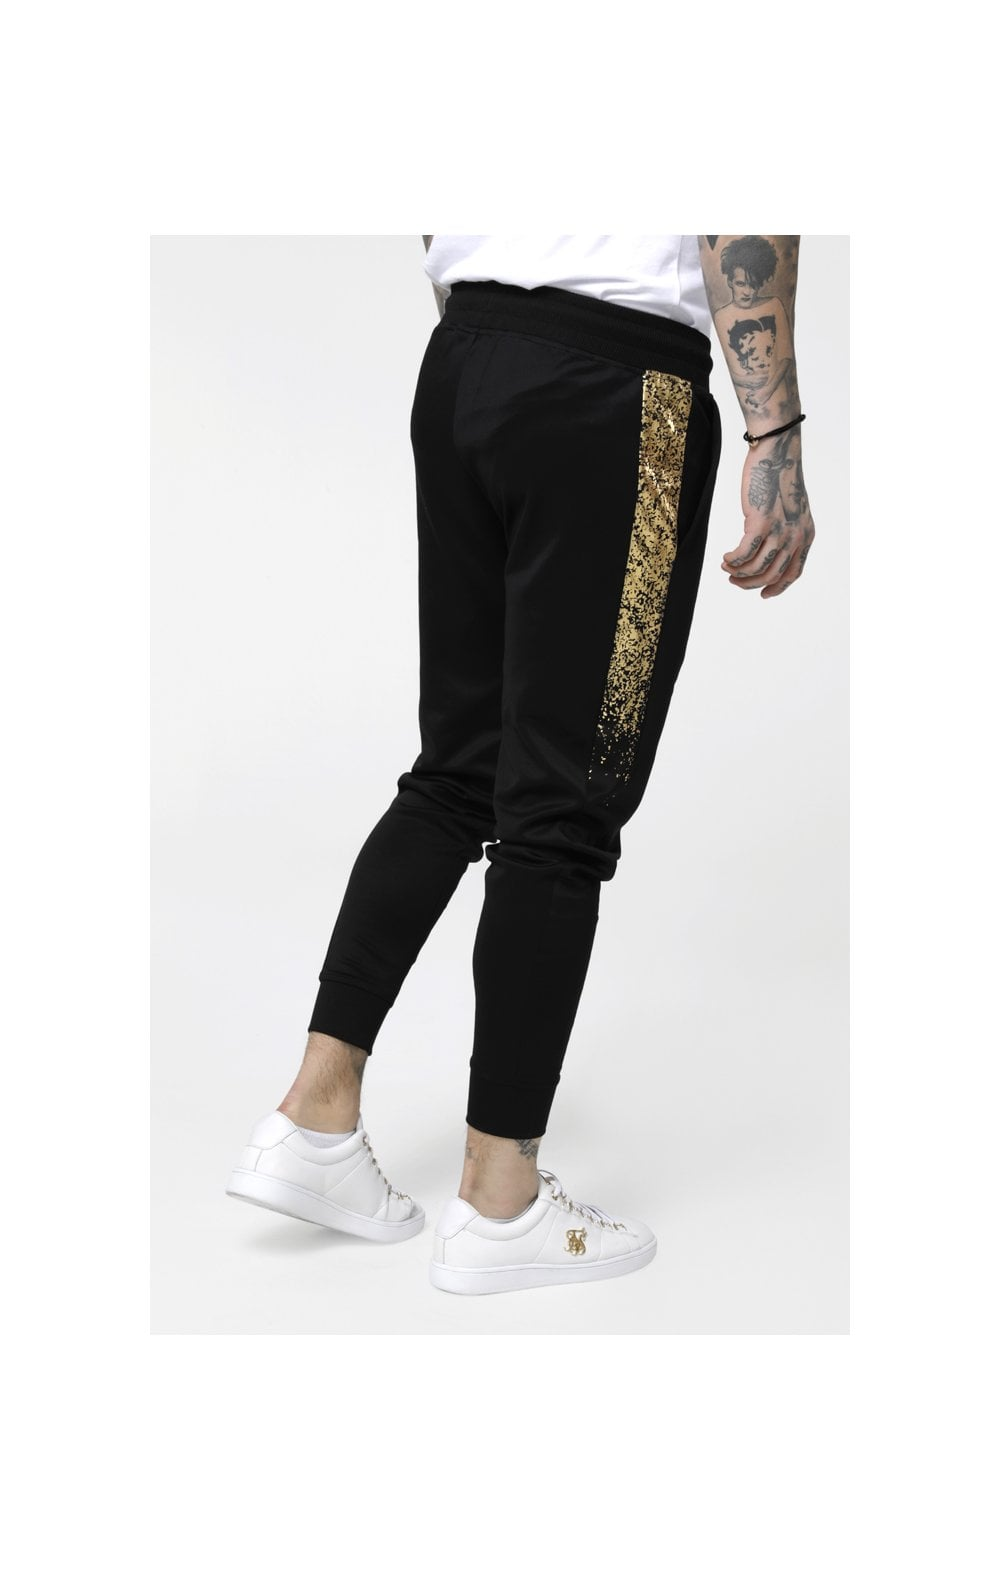 SikSilk Cuffed Cropped Foil Fade Panel Pants - Black & Gold (4)